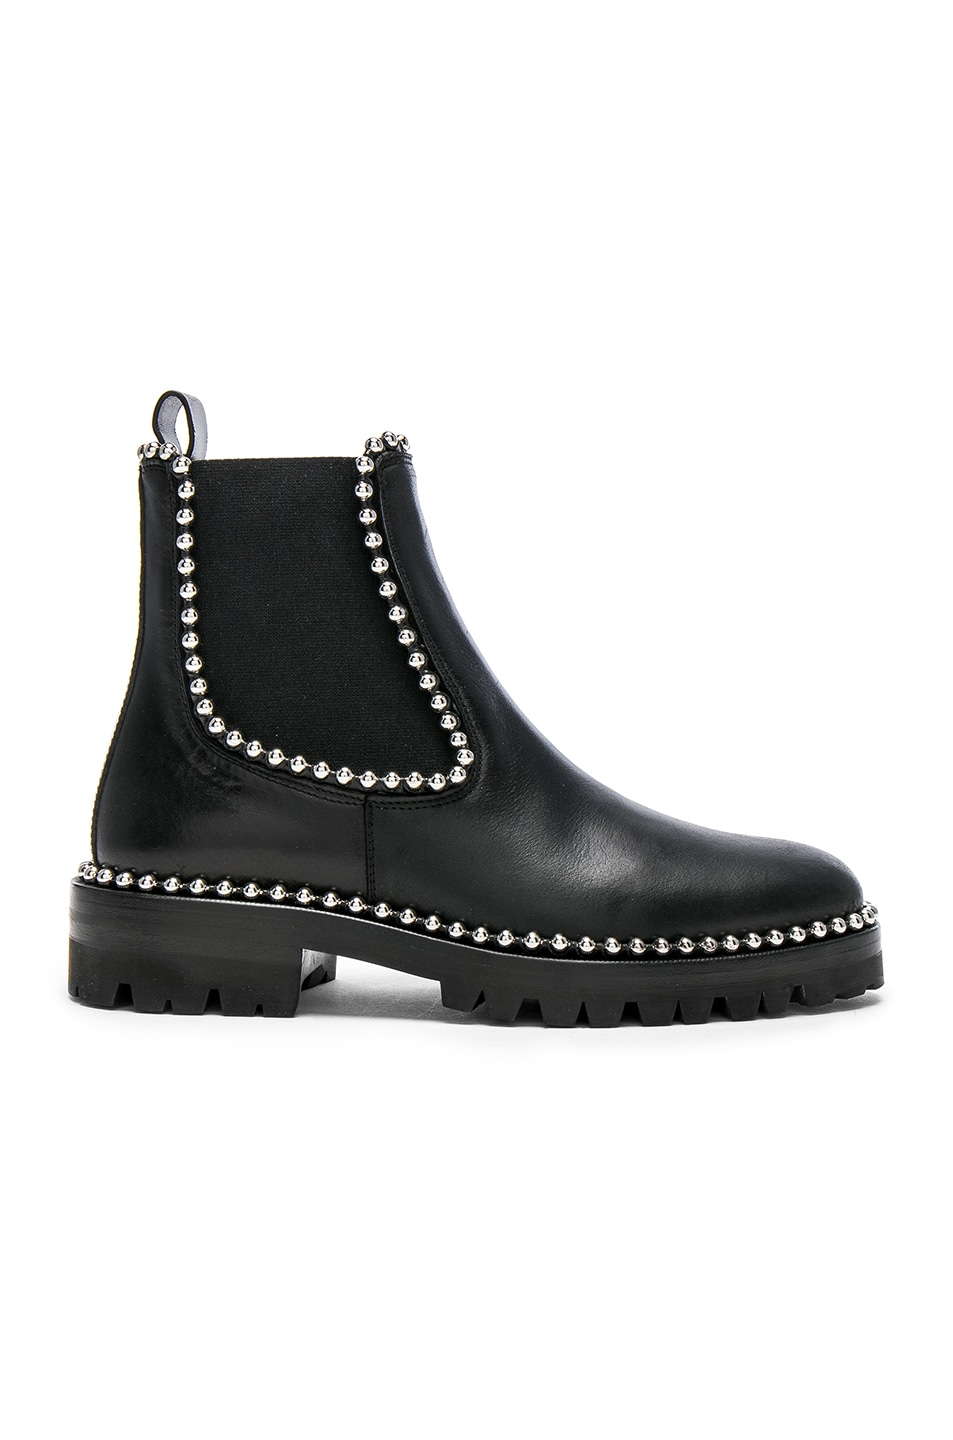 Image 1 of Alexander Wang Spencer Leather Boots in Black